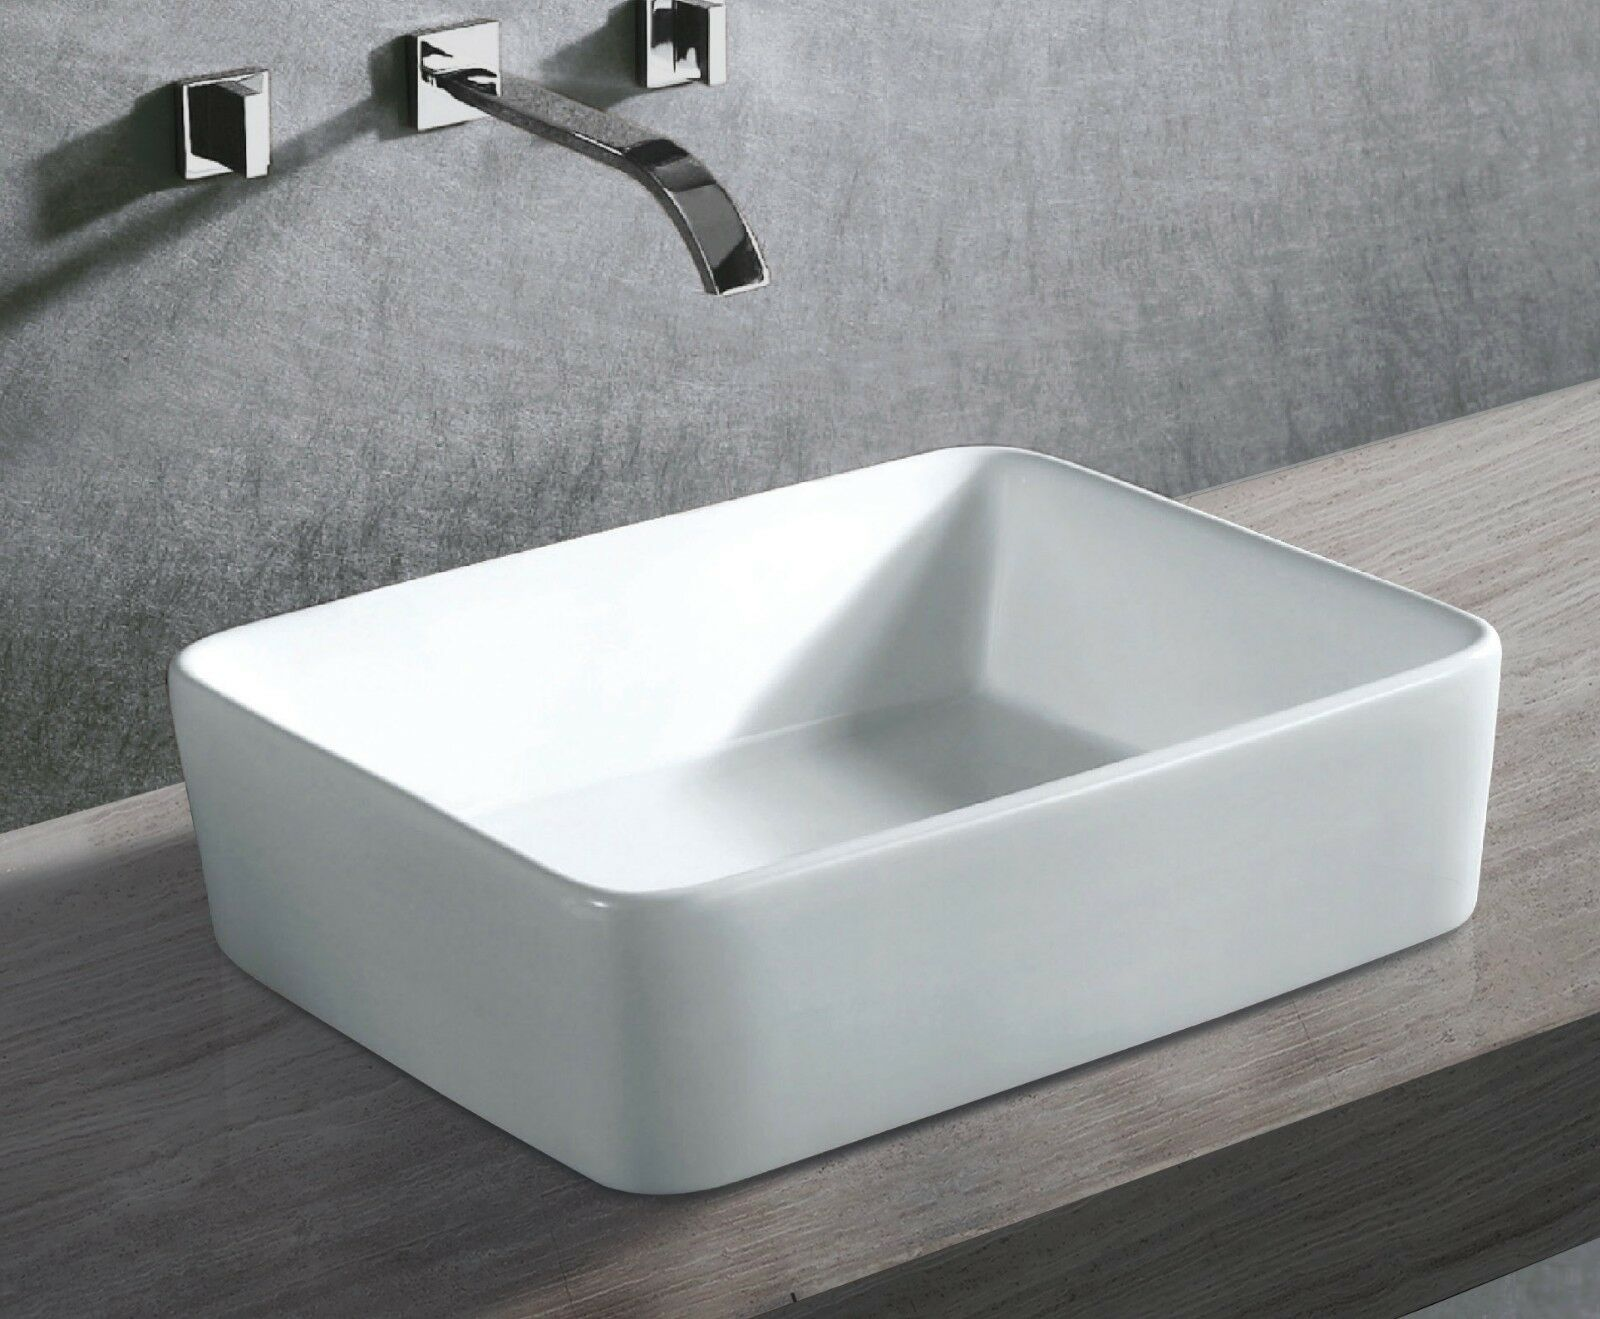 Ceramic Wash Basin Bathroom Sink Unit Bowl Above Counter Top Vanity AAA K303 - Rapid Building Products